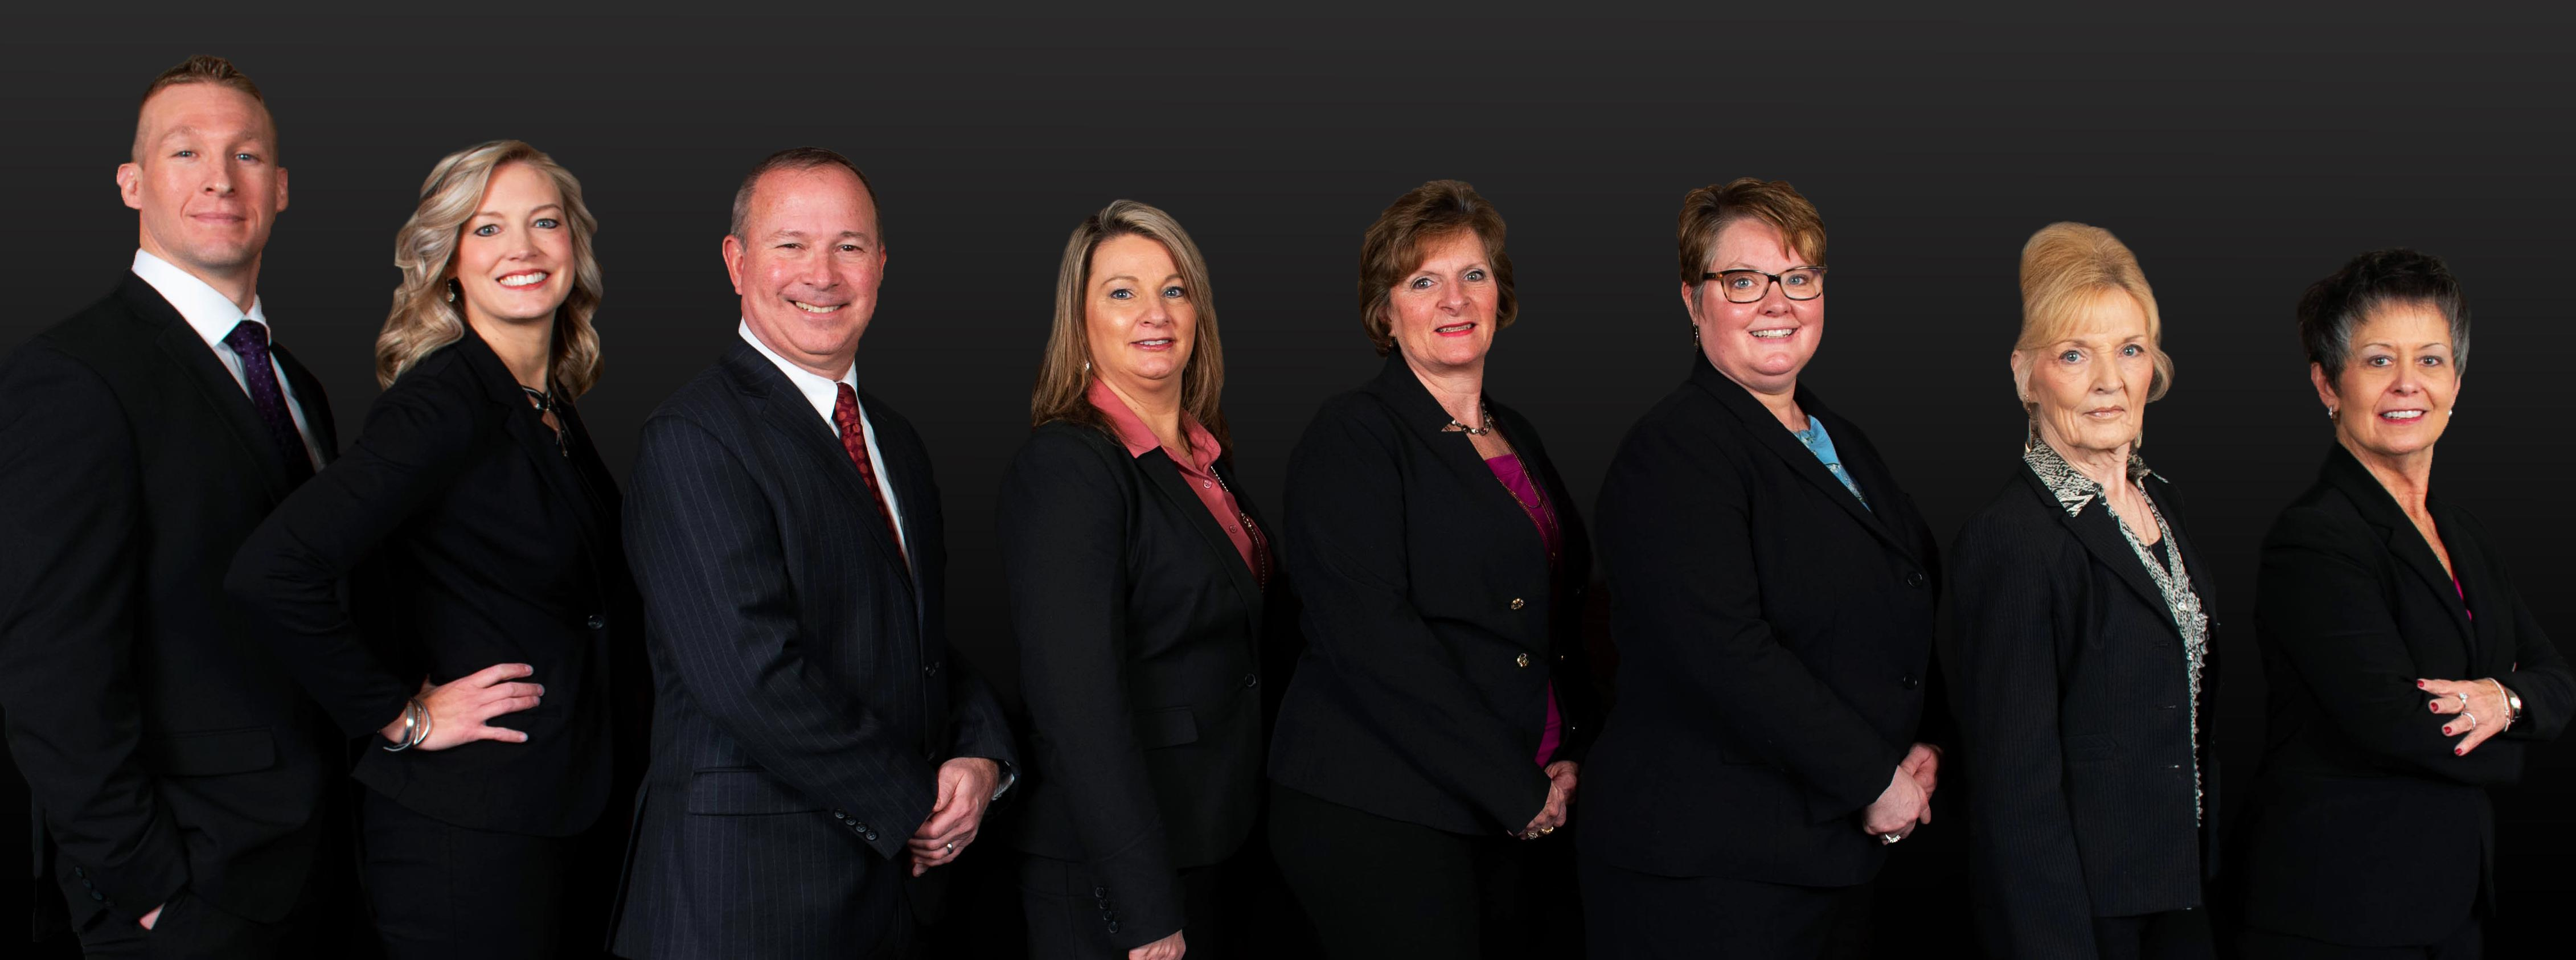 The Clarion Office Profile Photo